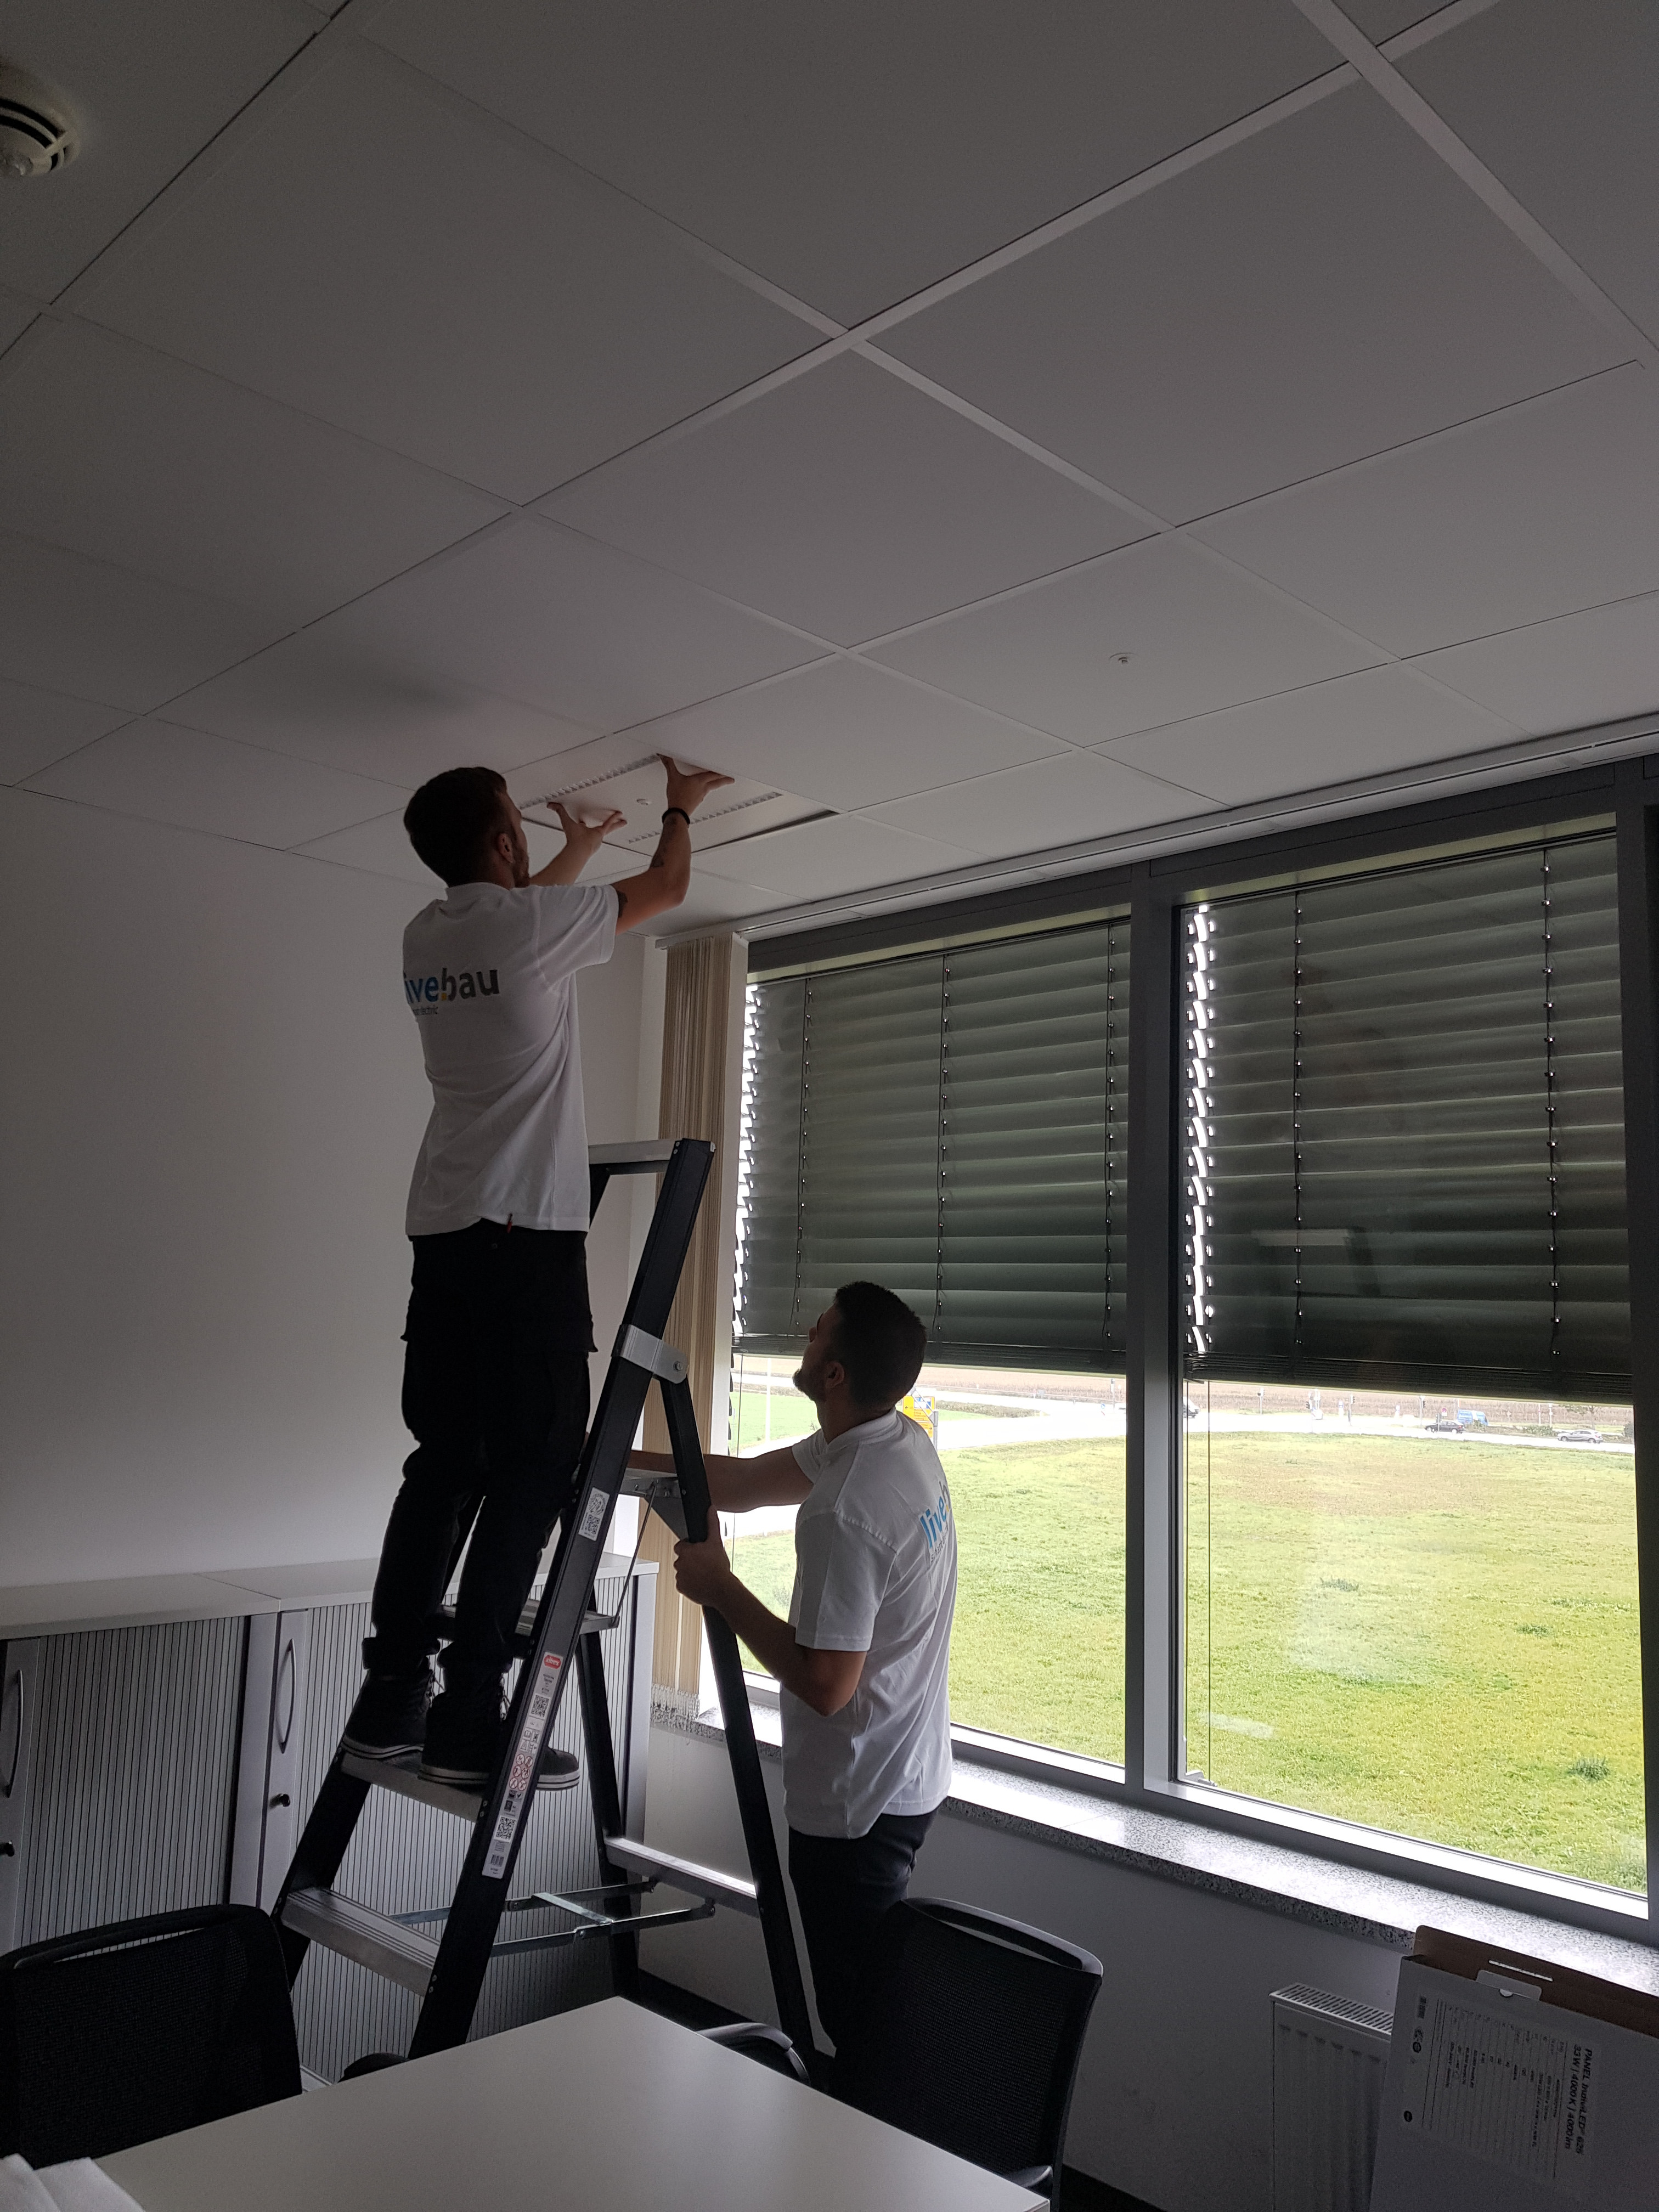 Successful installation of lights at OSRAM